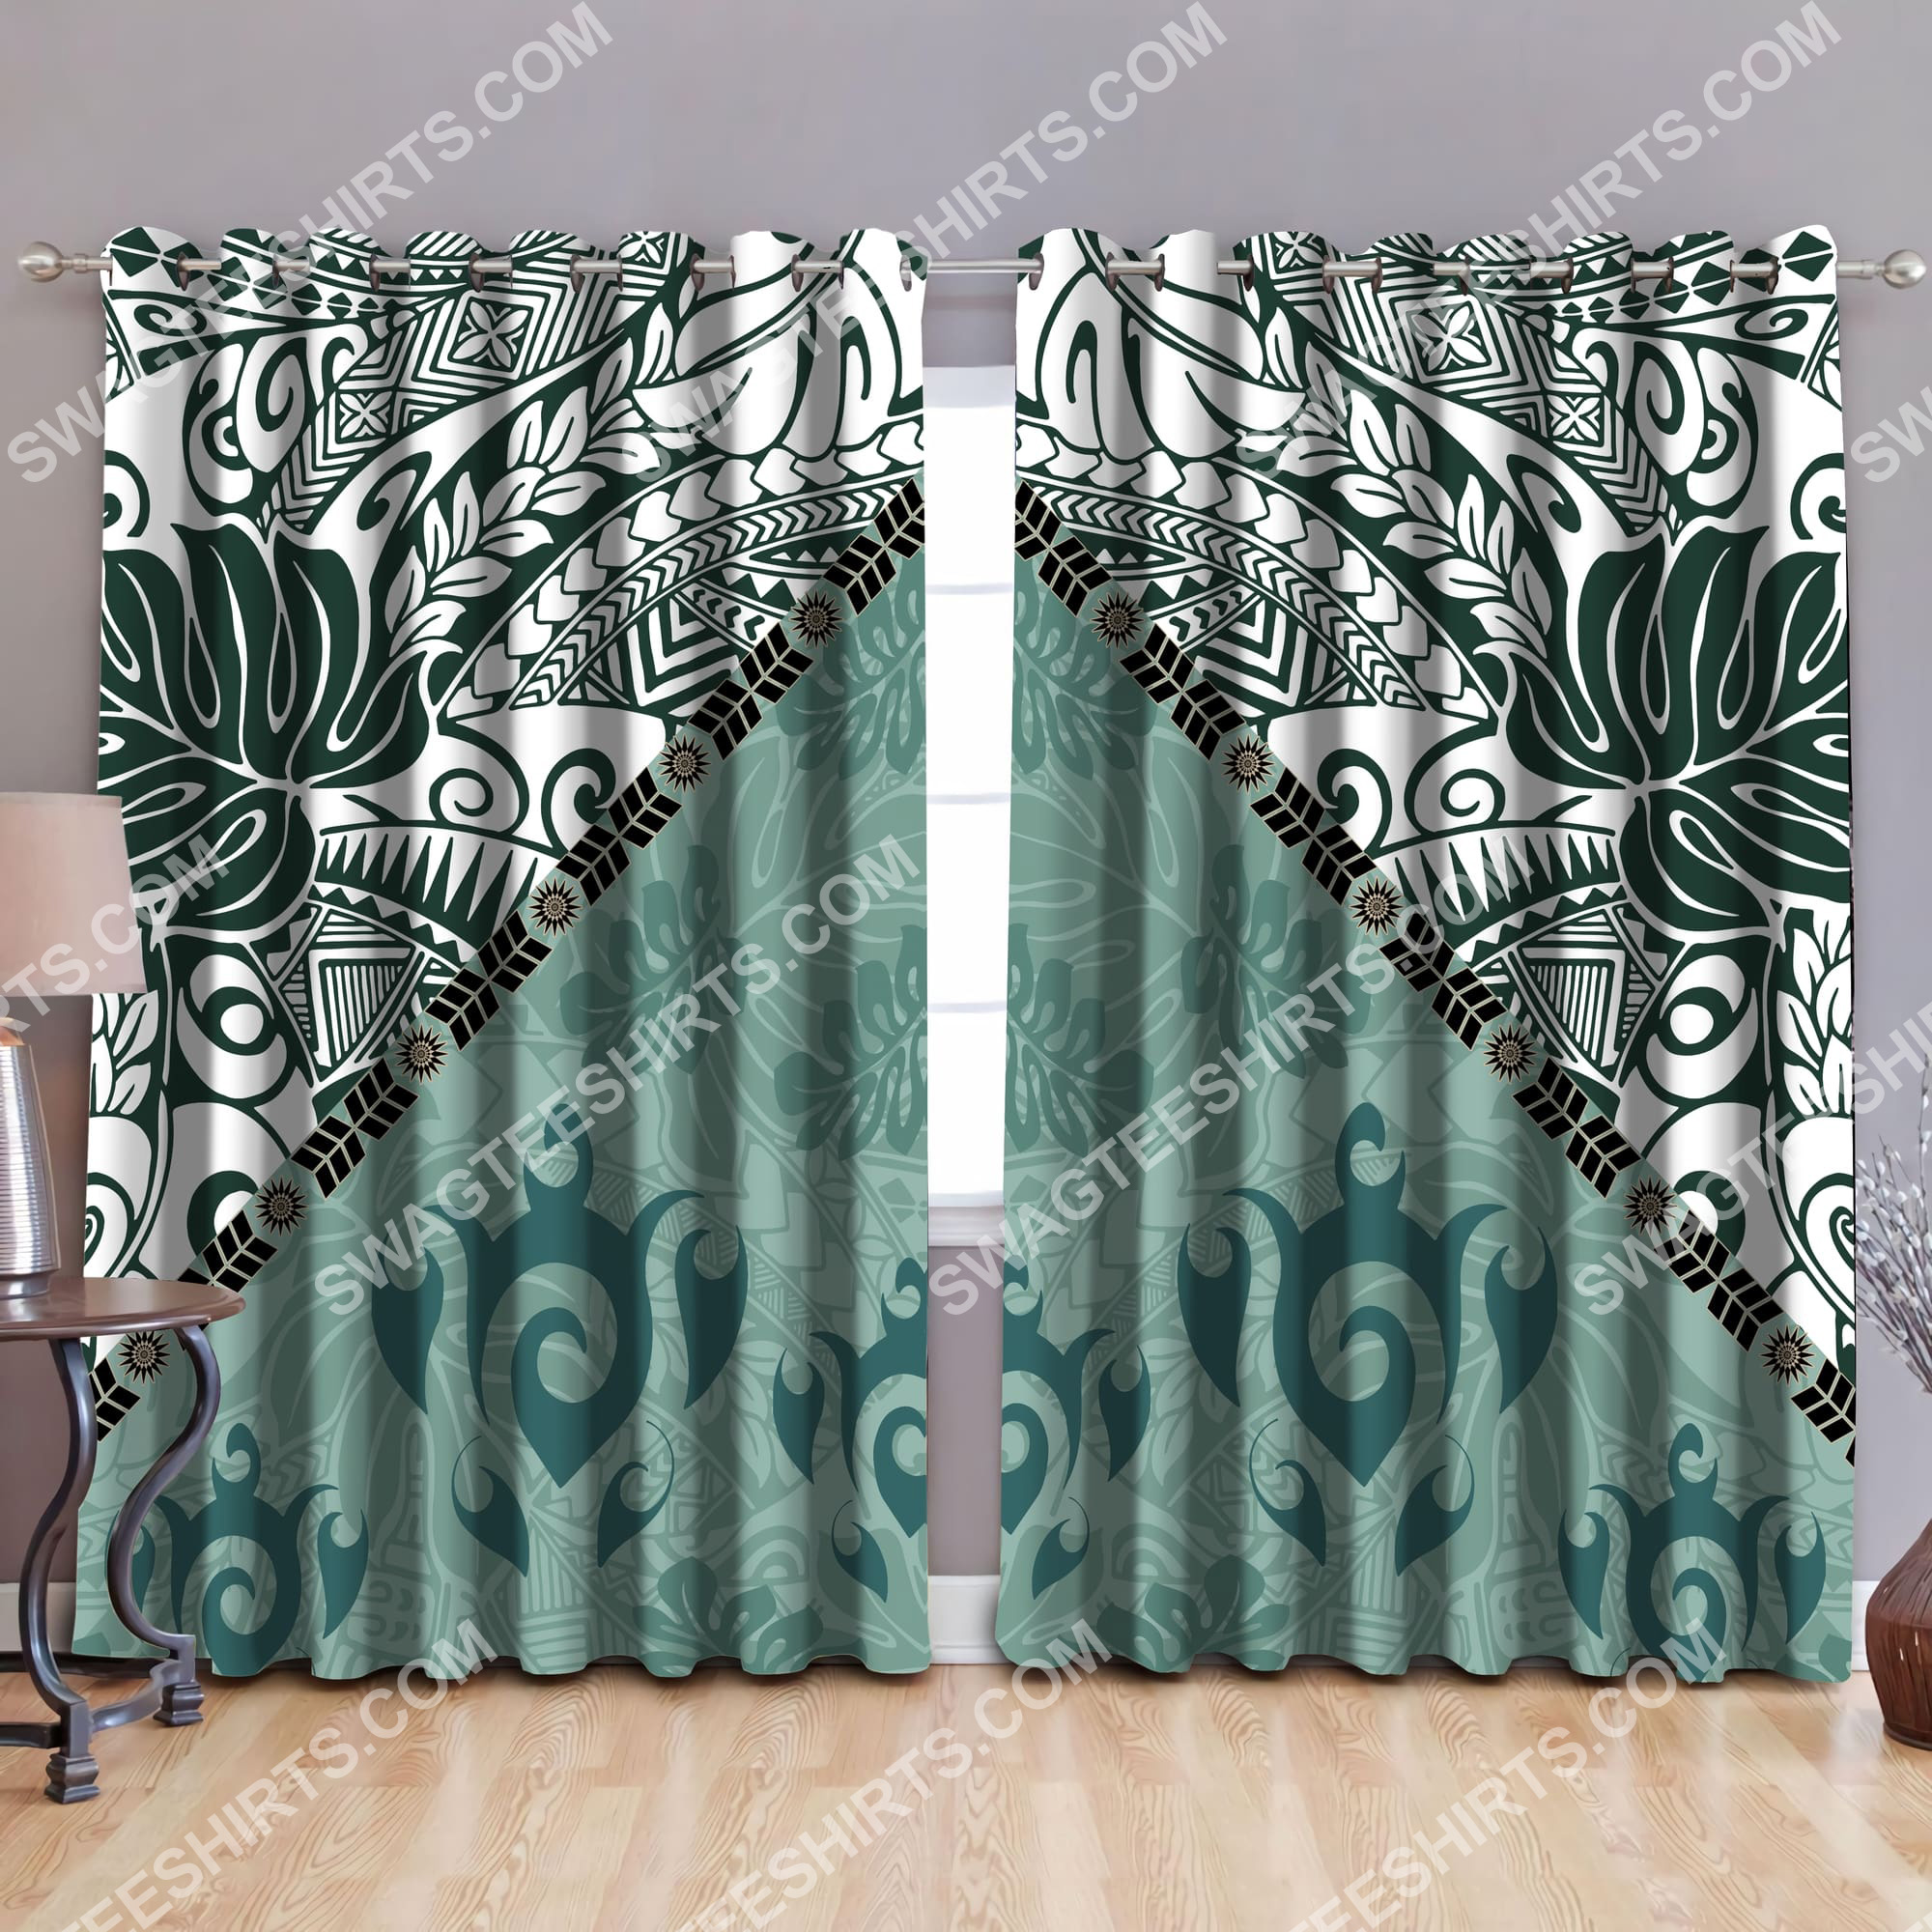 vintage leaves and turtles all over printed window curtains 2(1)